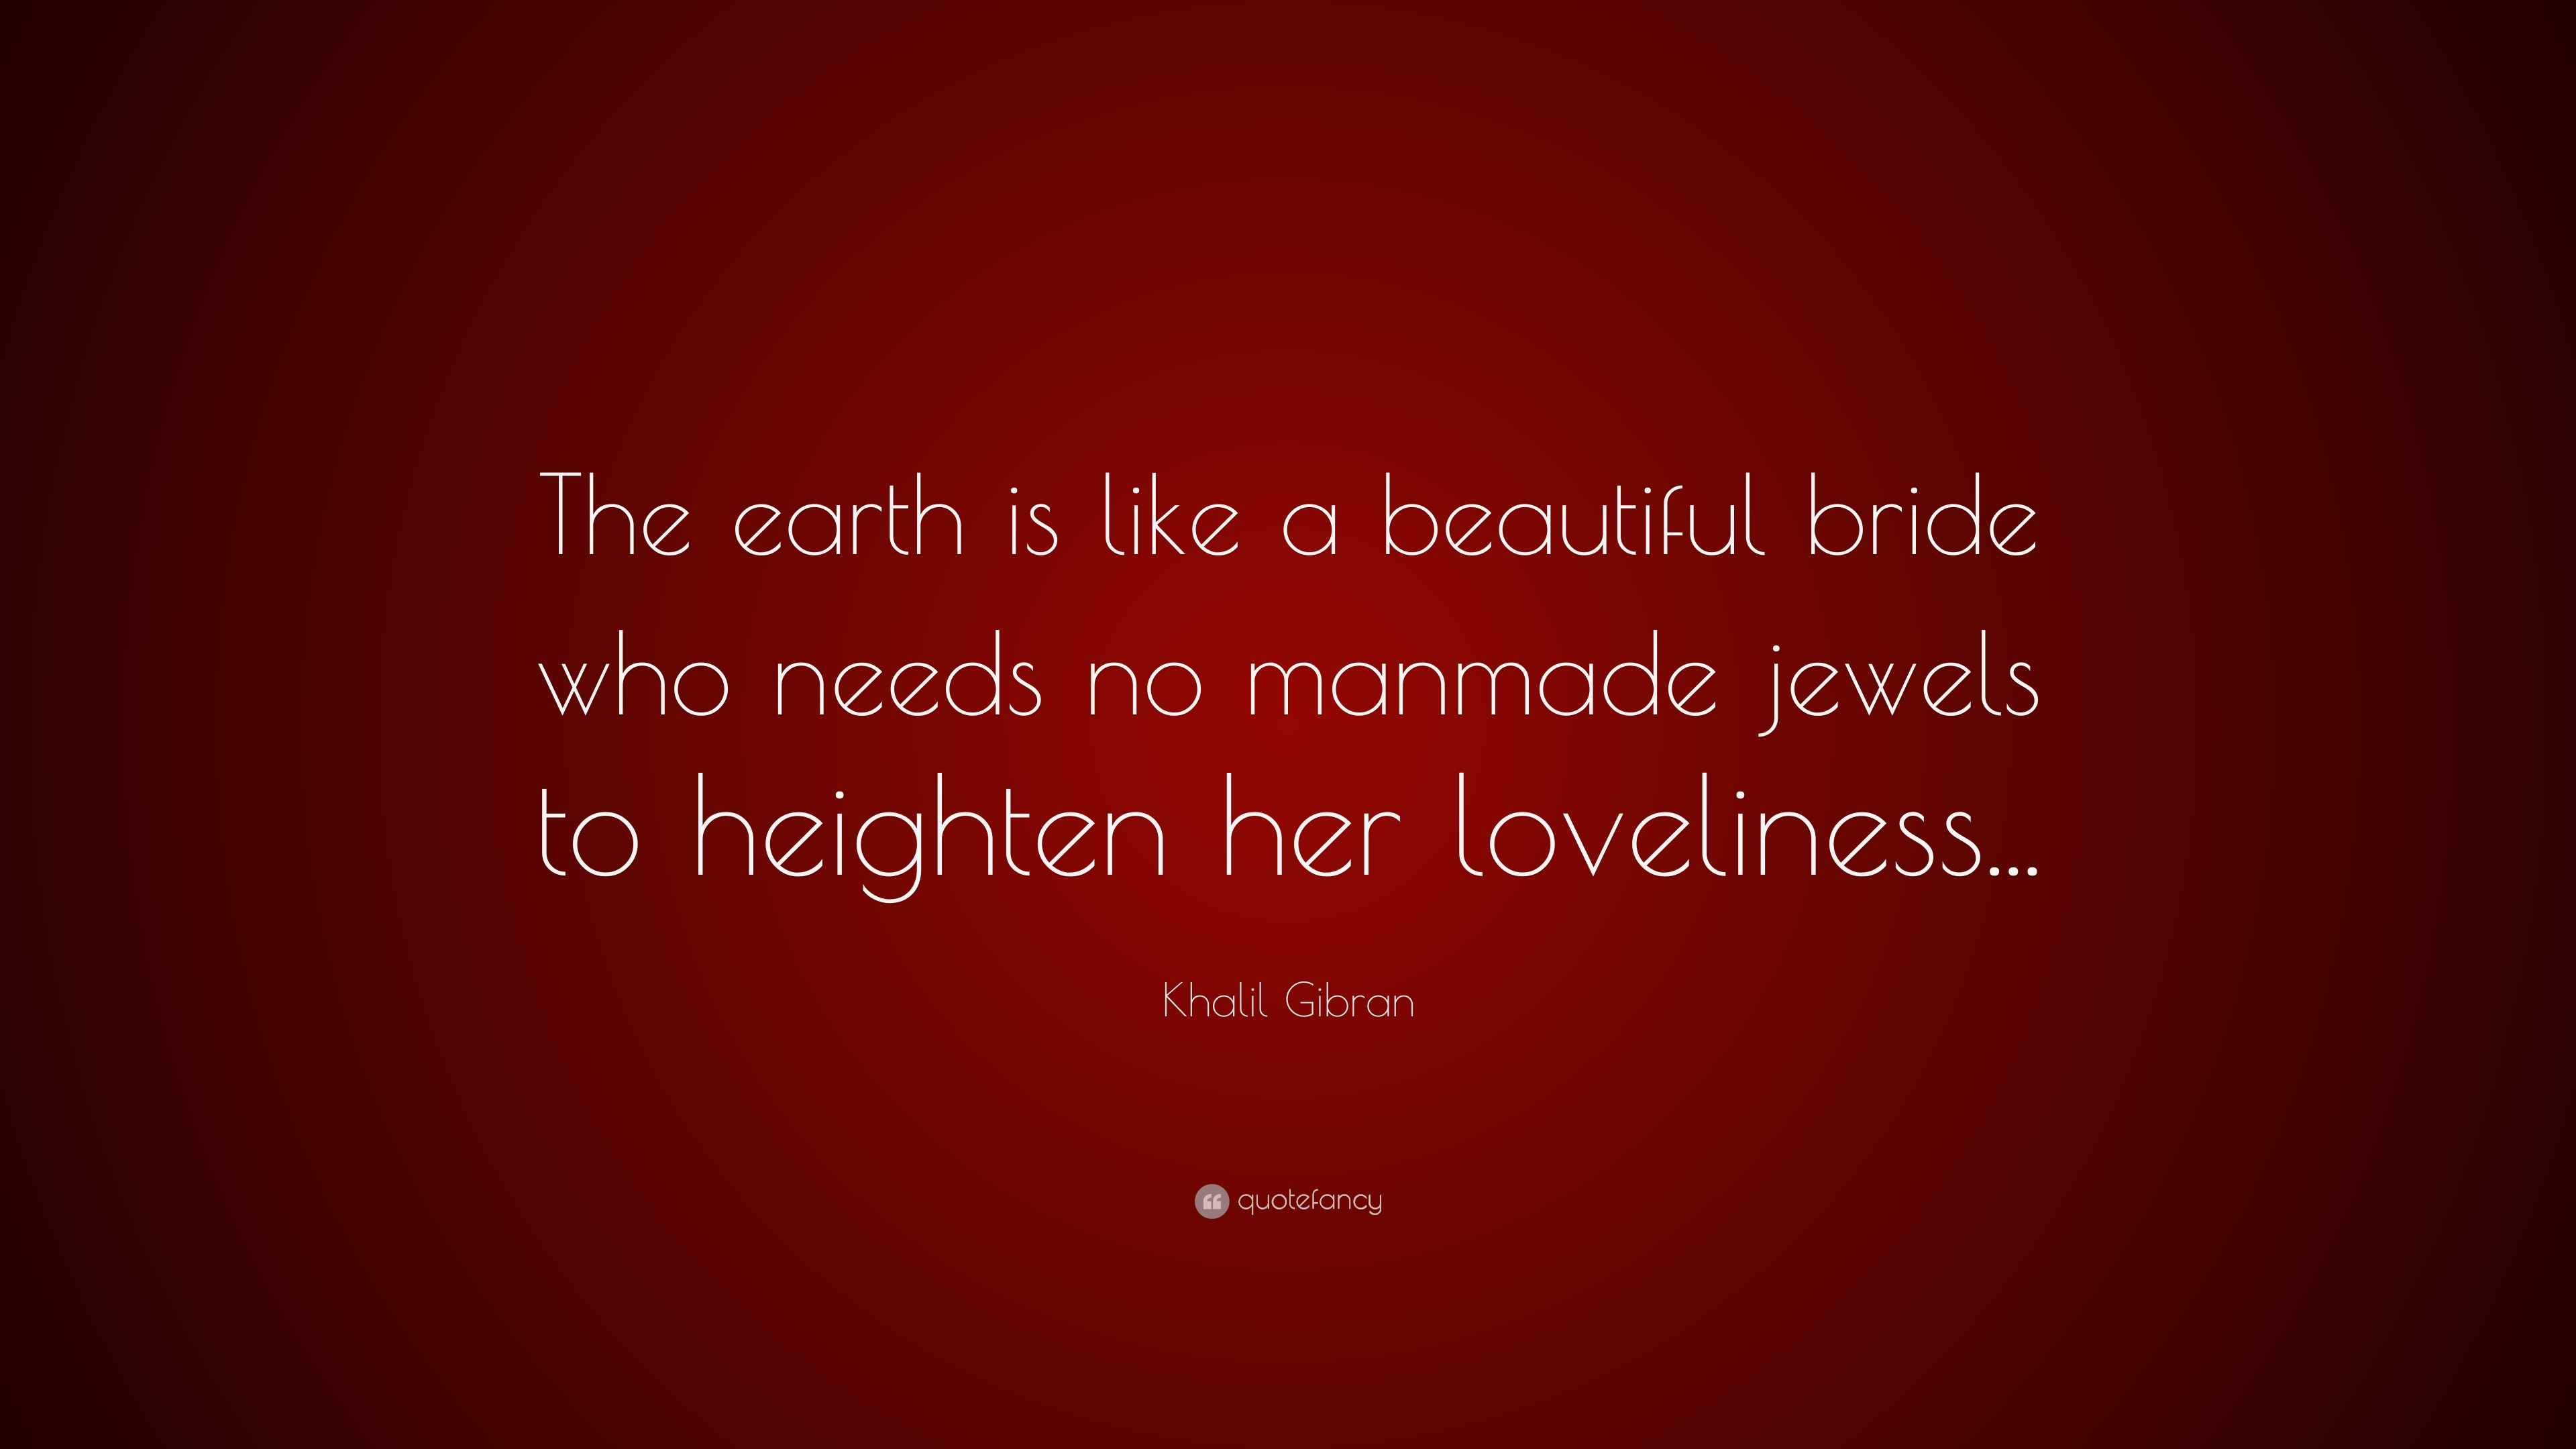 Khalil Gibran Quote The Earth Is Like A Beautiful Bride Who Needs No Manmade